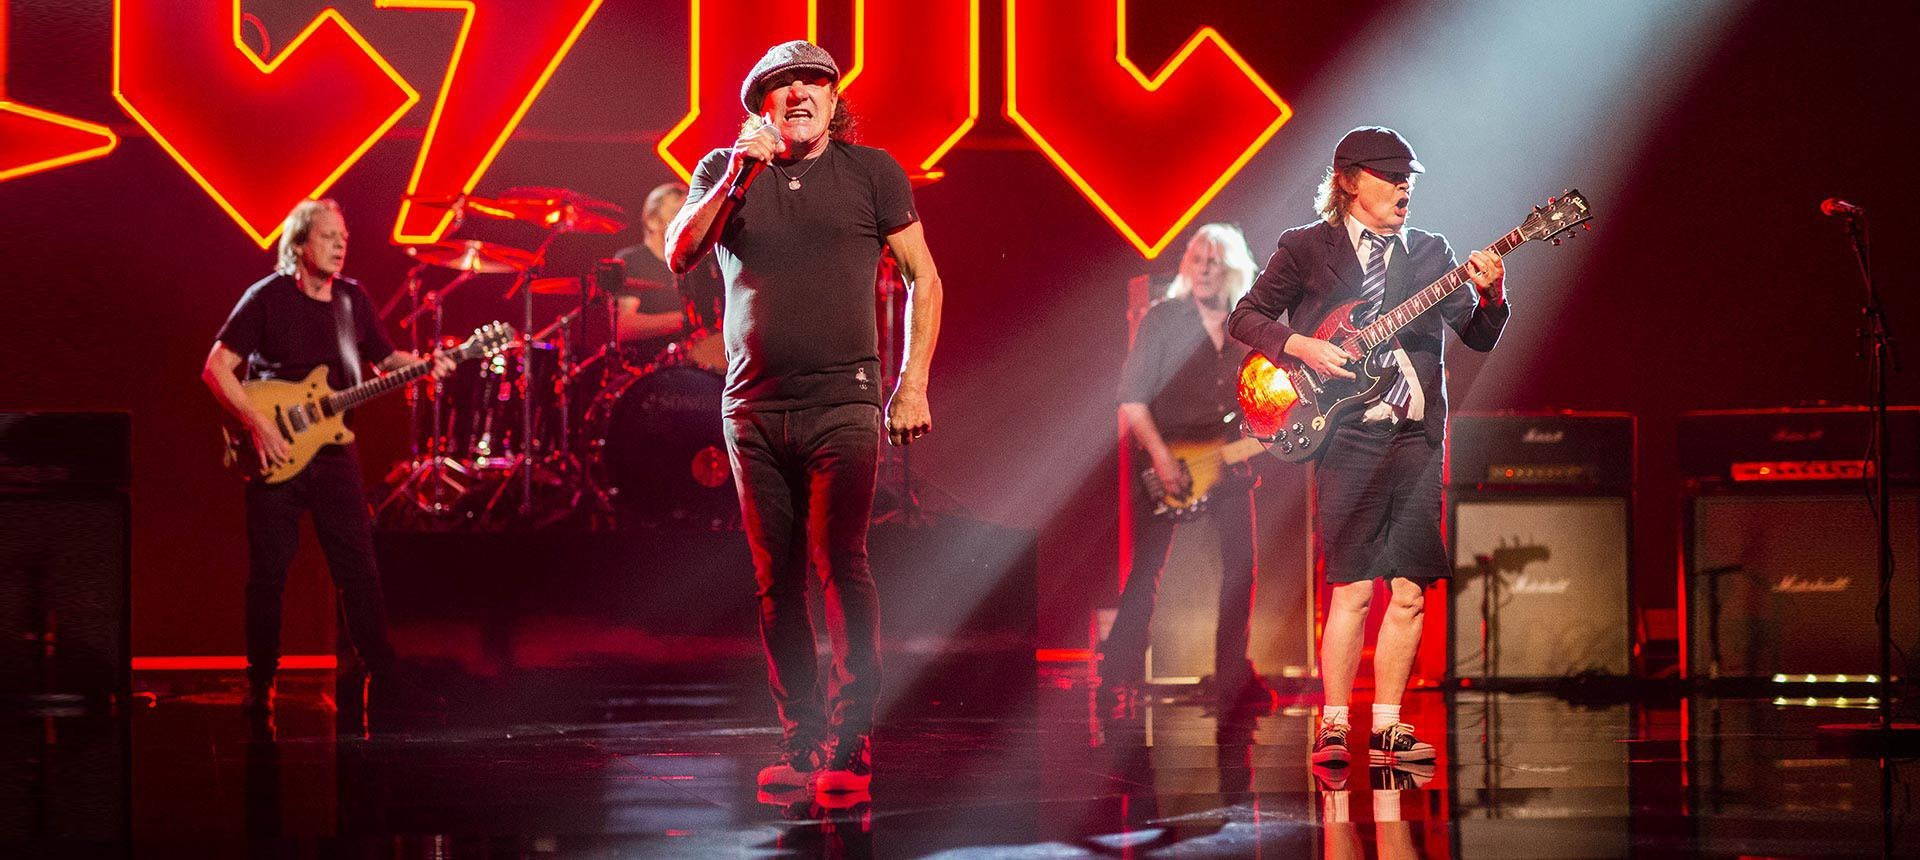 ¿AC/DC confirma su regreso para este 2020 con Brian Johnson?